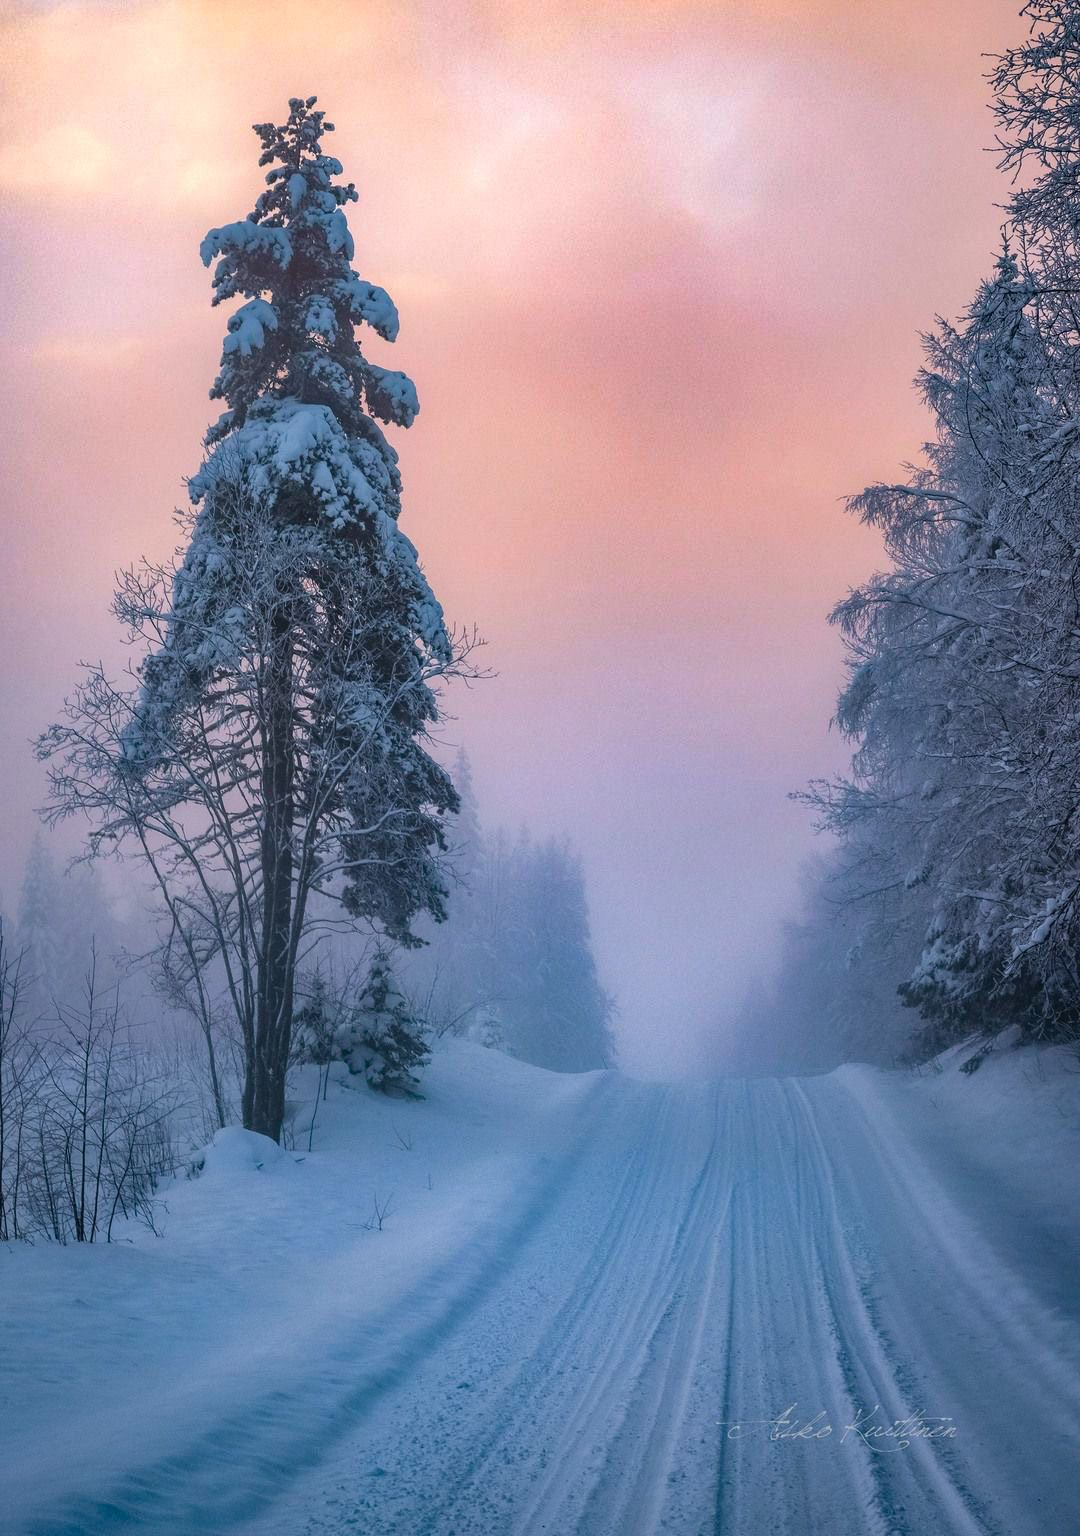 ***Winter Road (Finland) By Asko Kuittinen ️cr